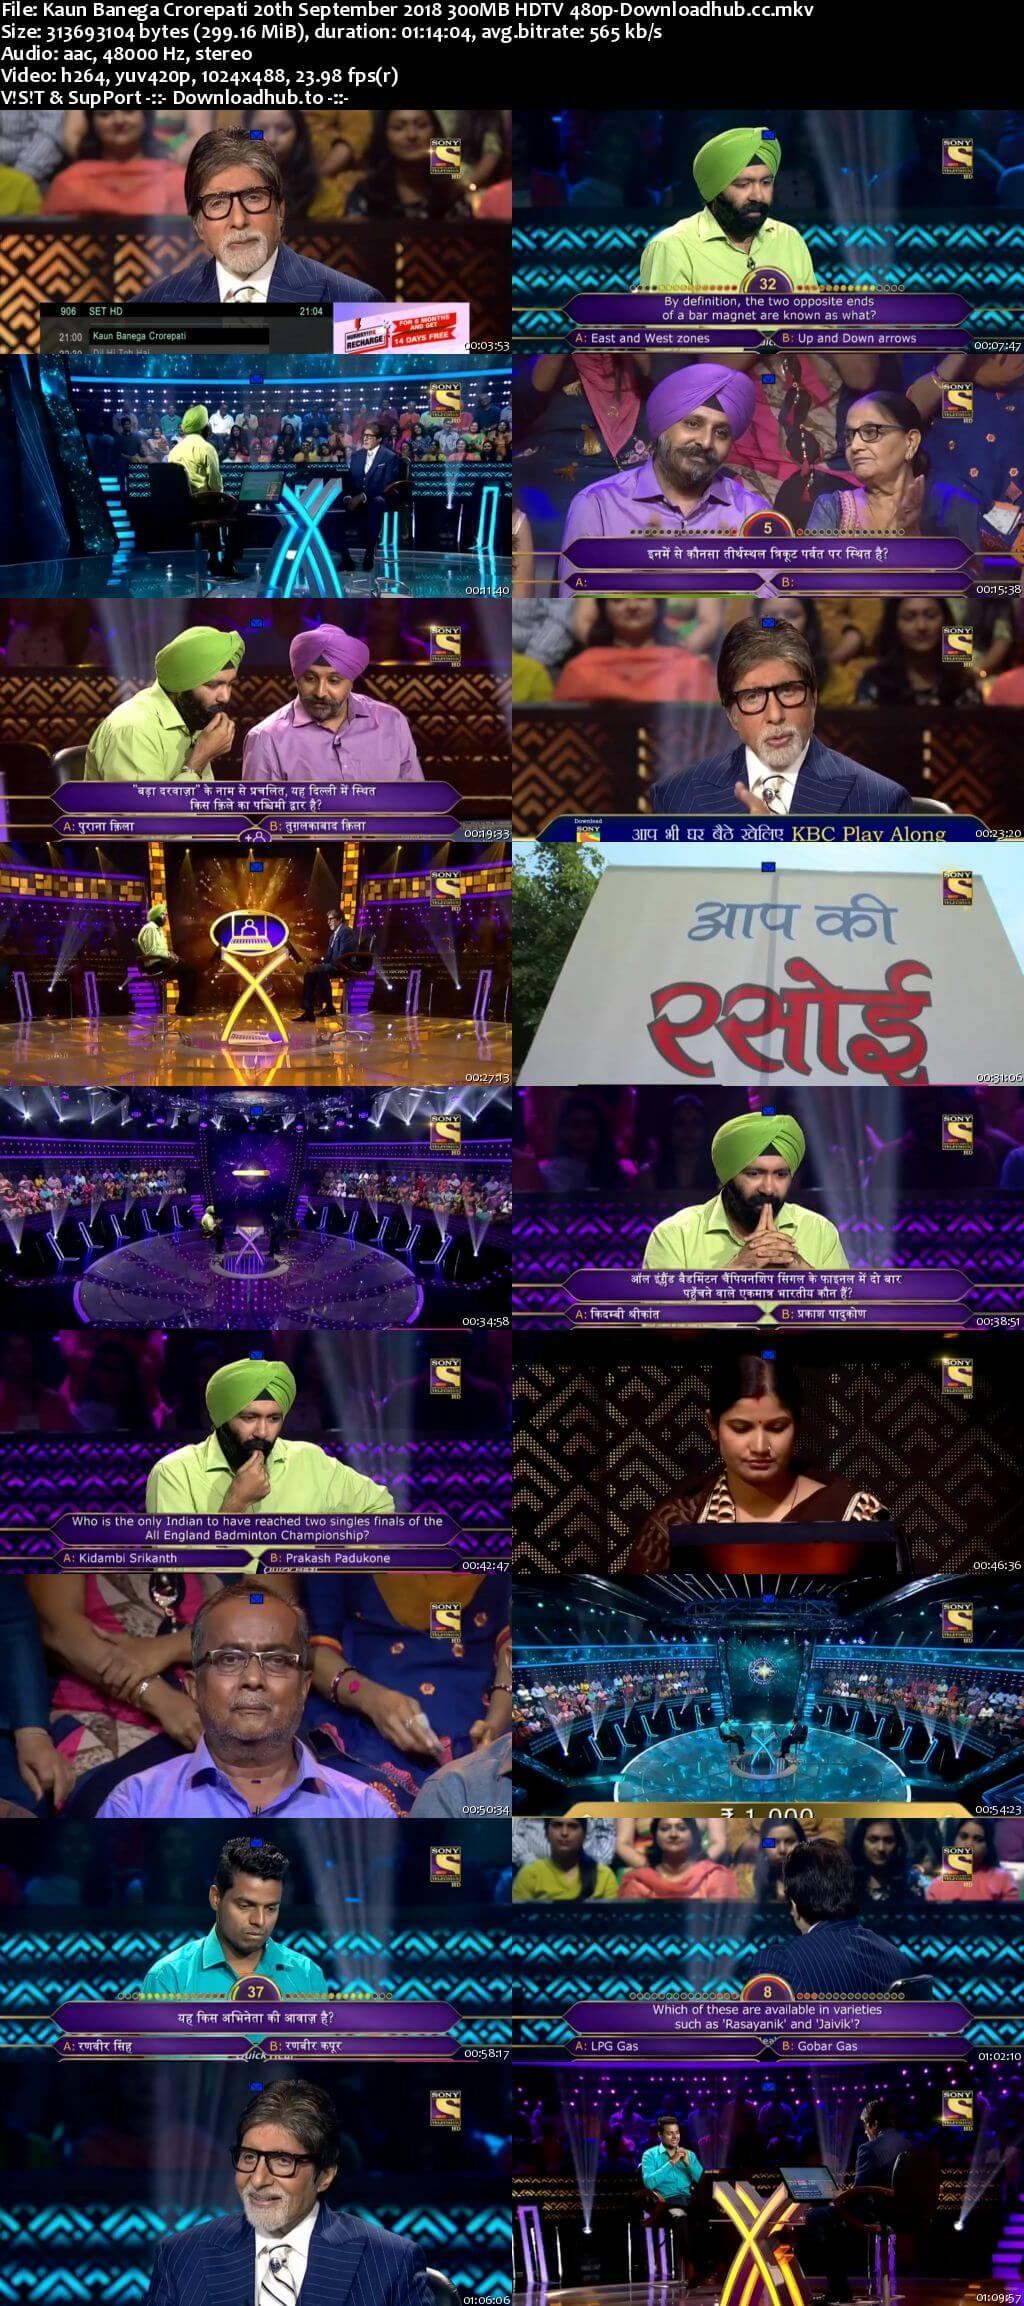 Kaun Banega Crorepati 20th September 2018 300MB HDTV 480p